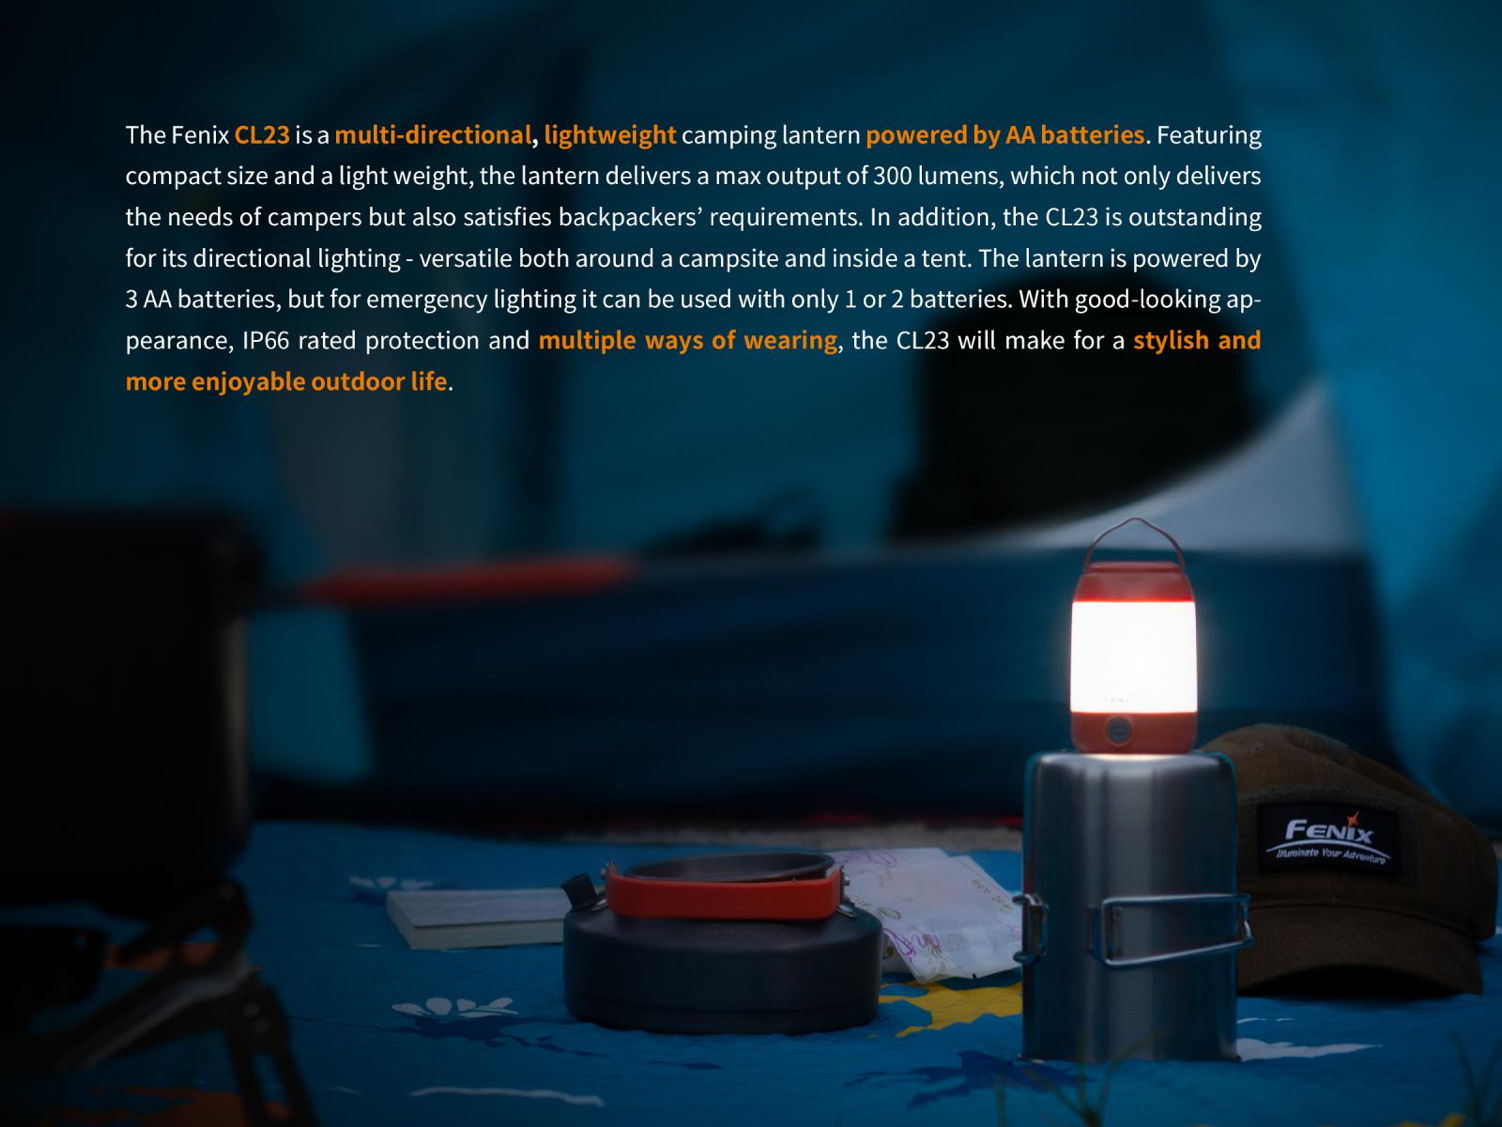 Fenix CL23 LED Camping Lantern in India, Camping Site Light for Adventures, Trails and Hiking, Emergency Light, Highly Portable Lightweight LED Light